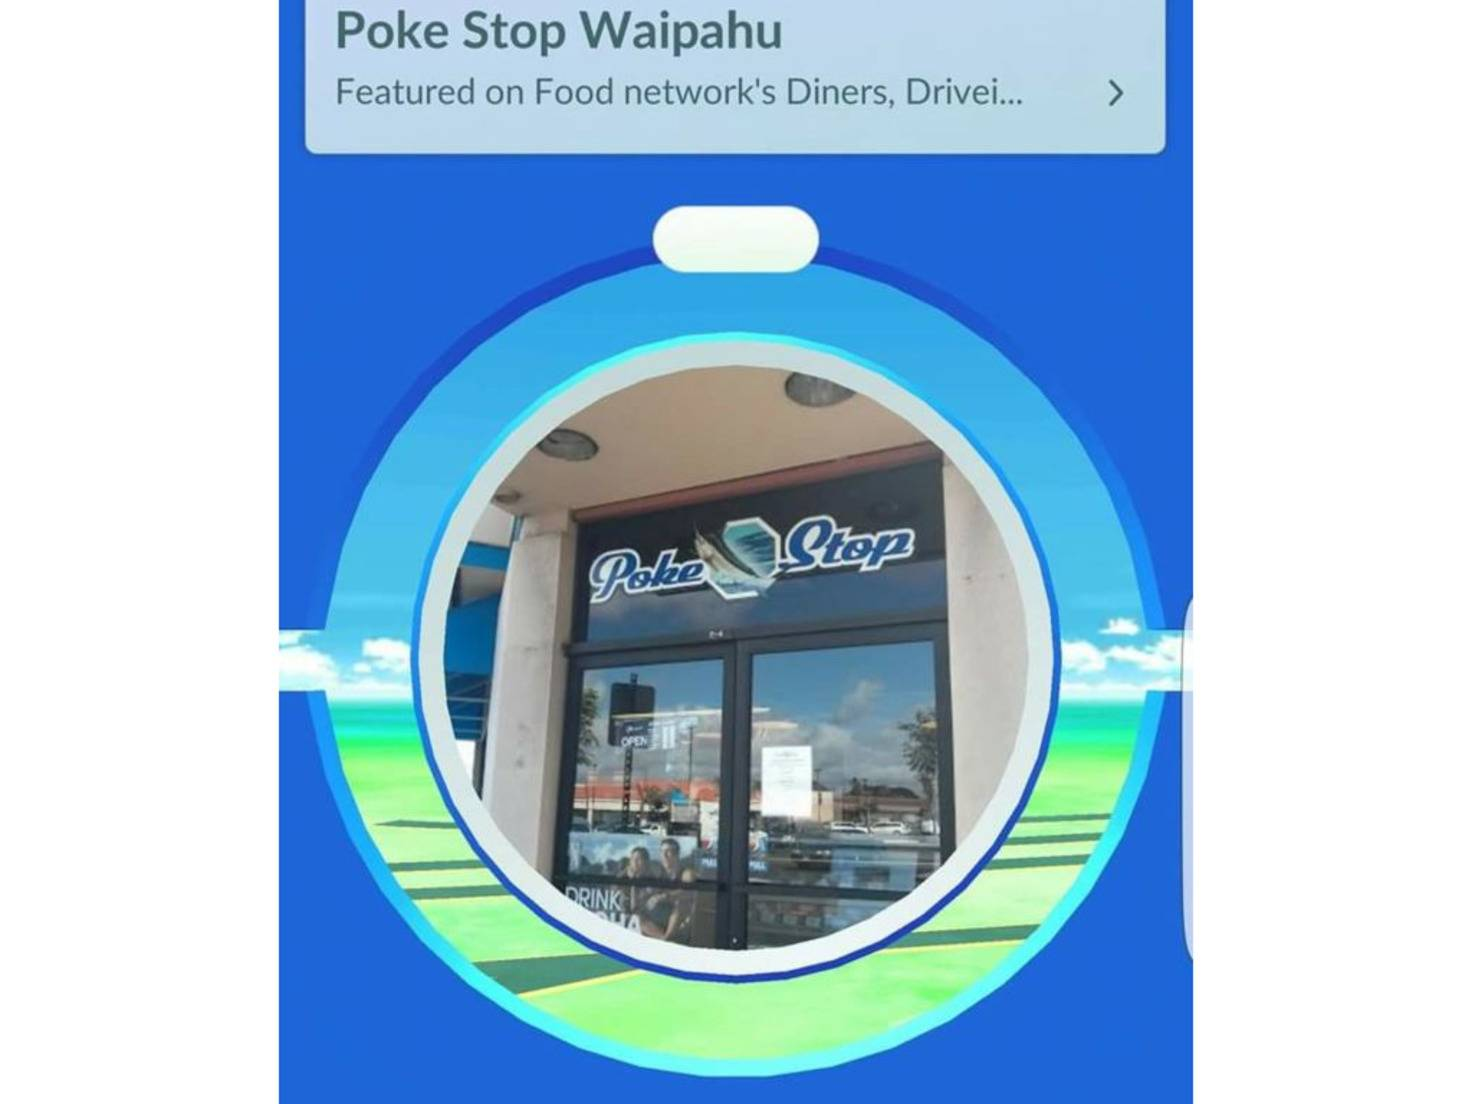 Pokestop_Pokémon_Pokestop